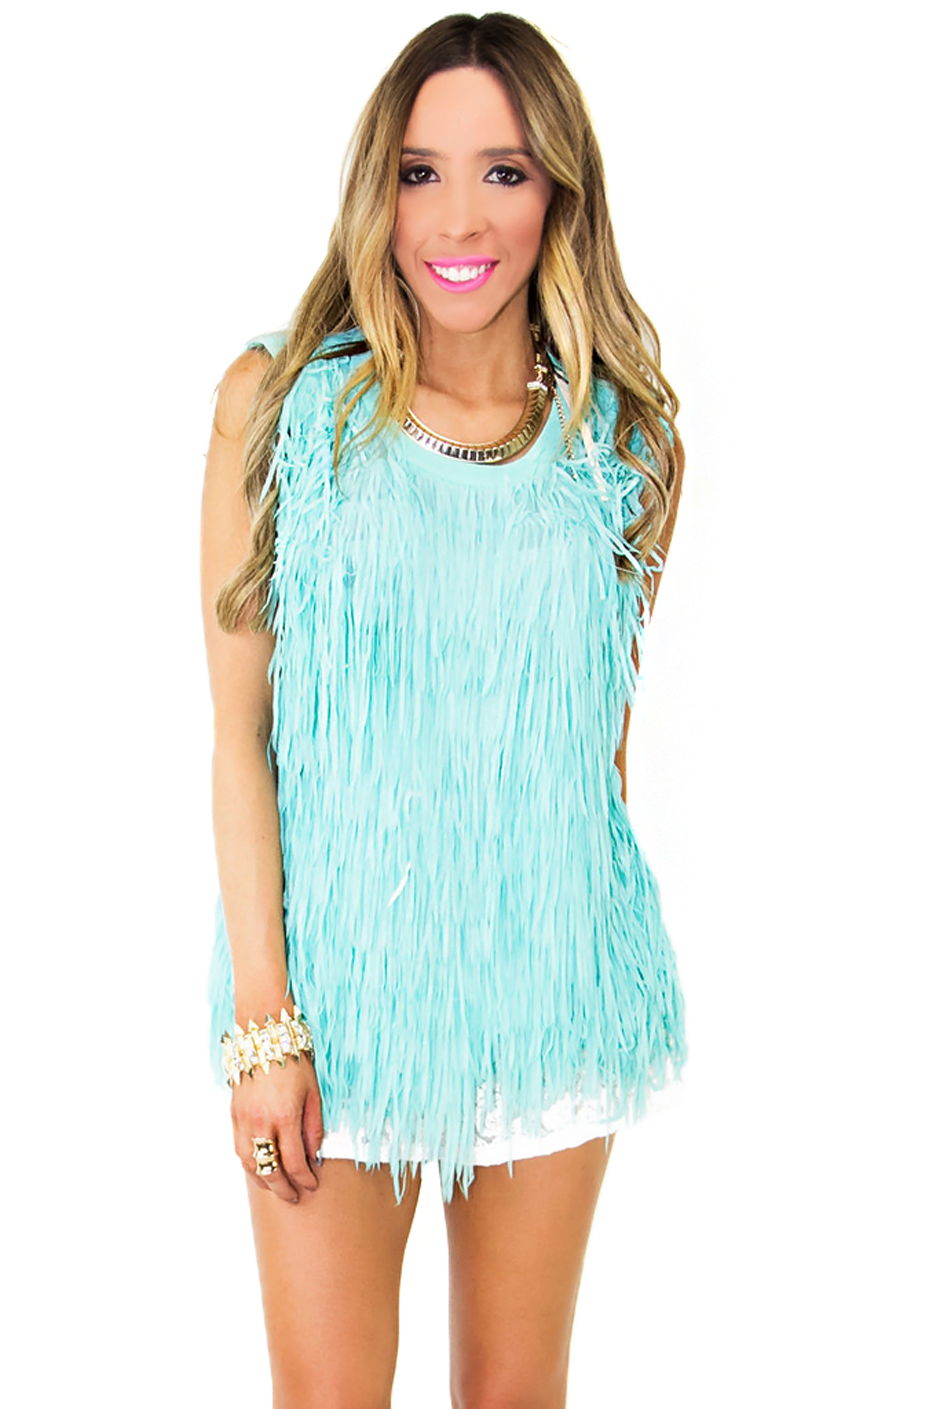 ALL OVER FRINGED TOP - Mint (Final Sale) - Haute & Rebellious